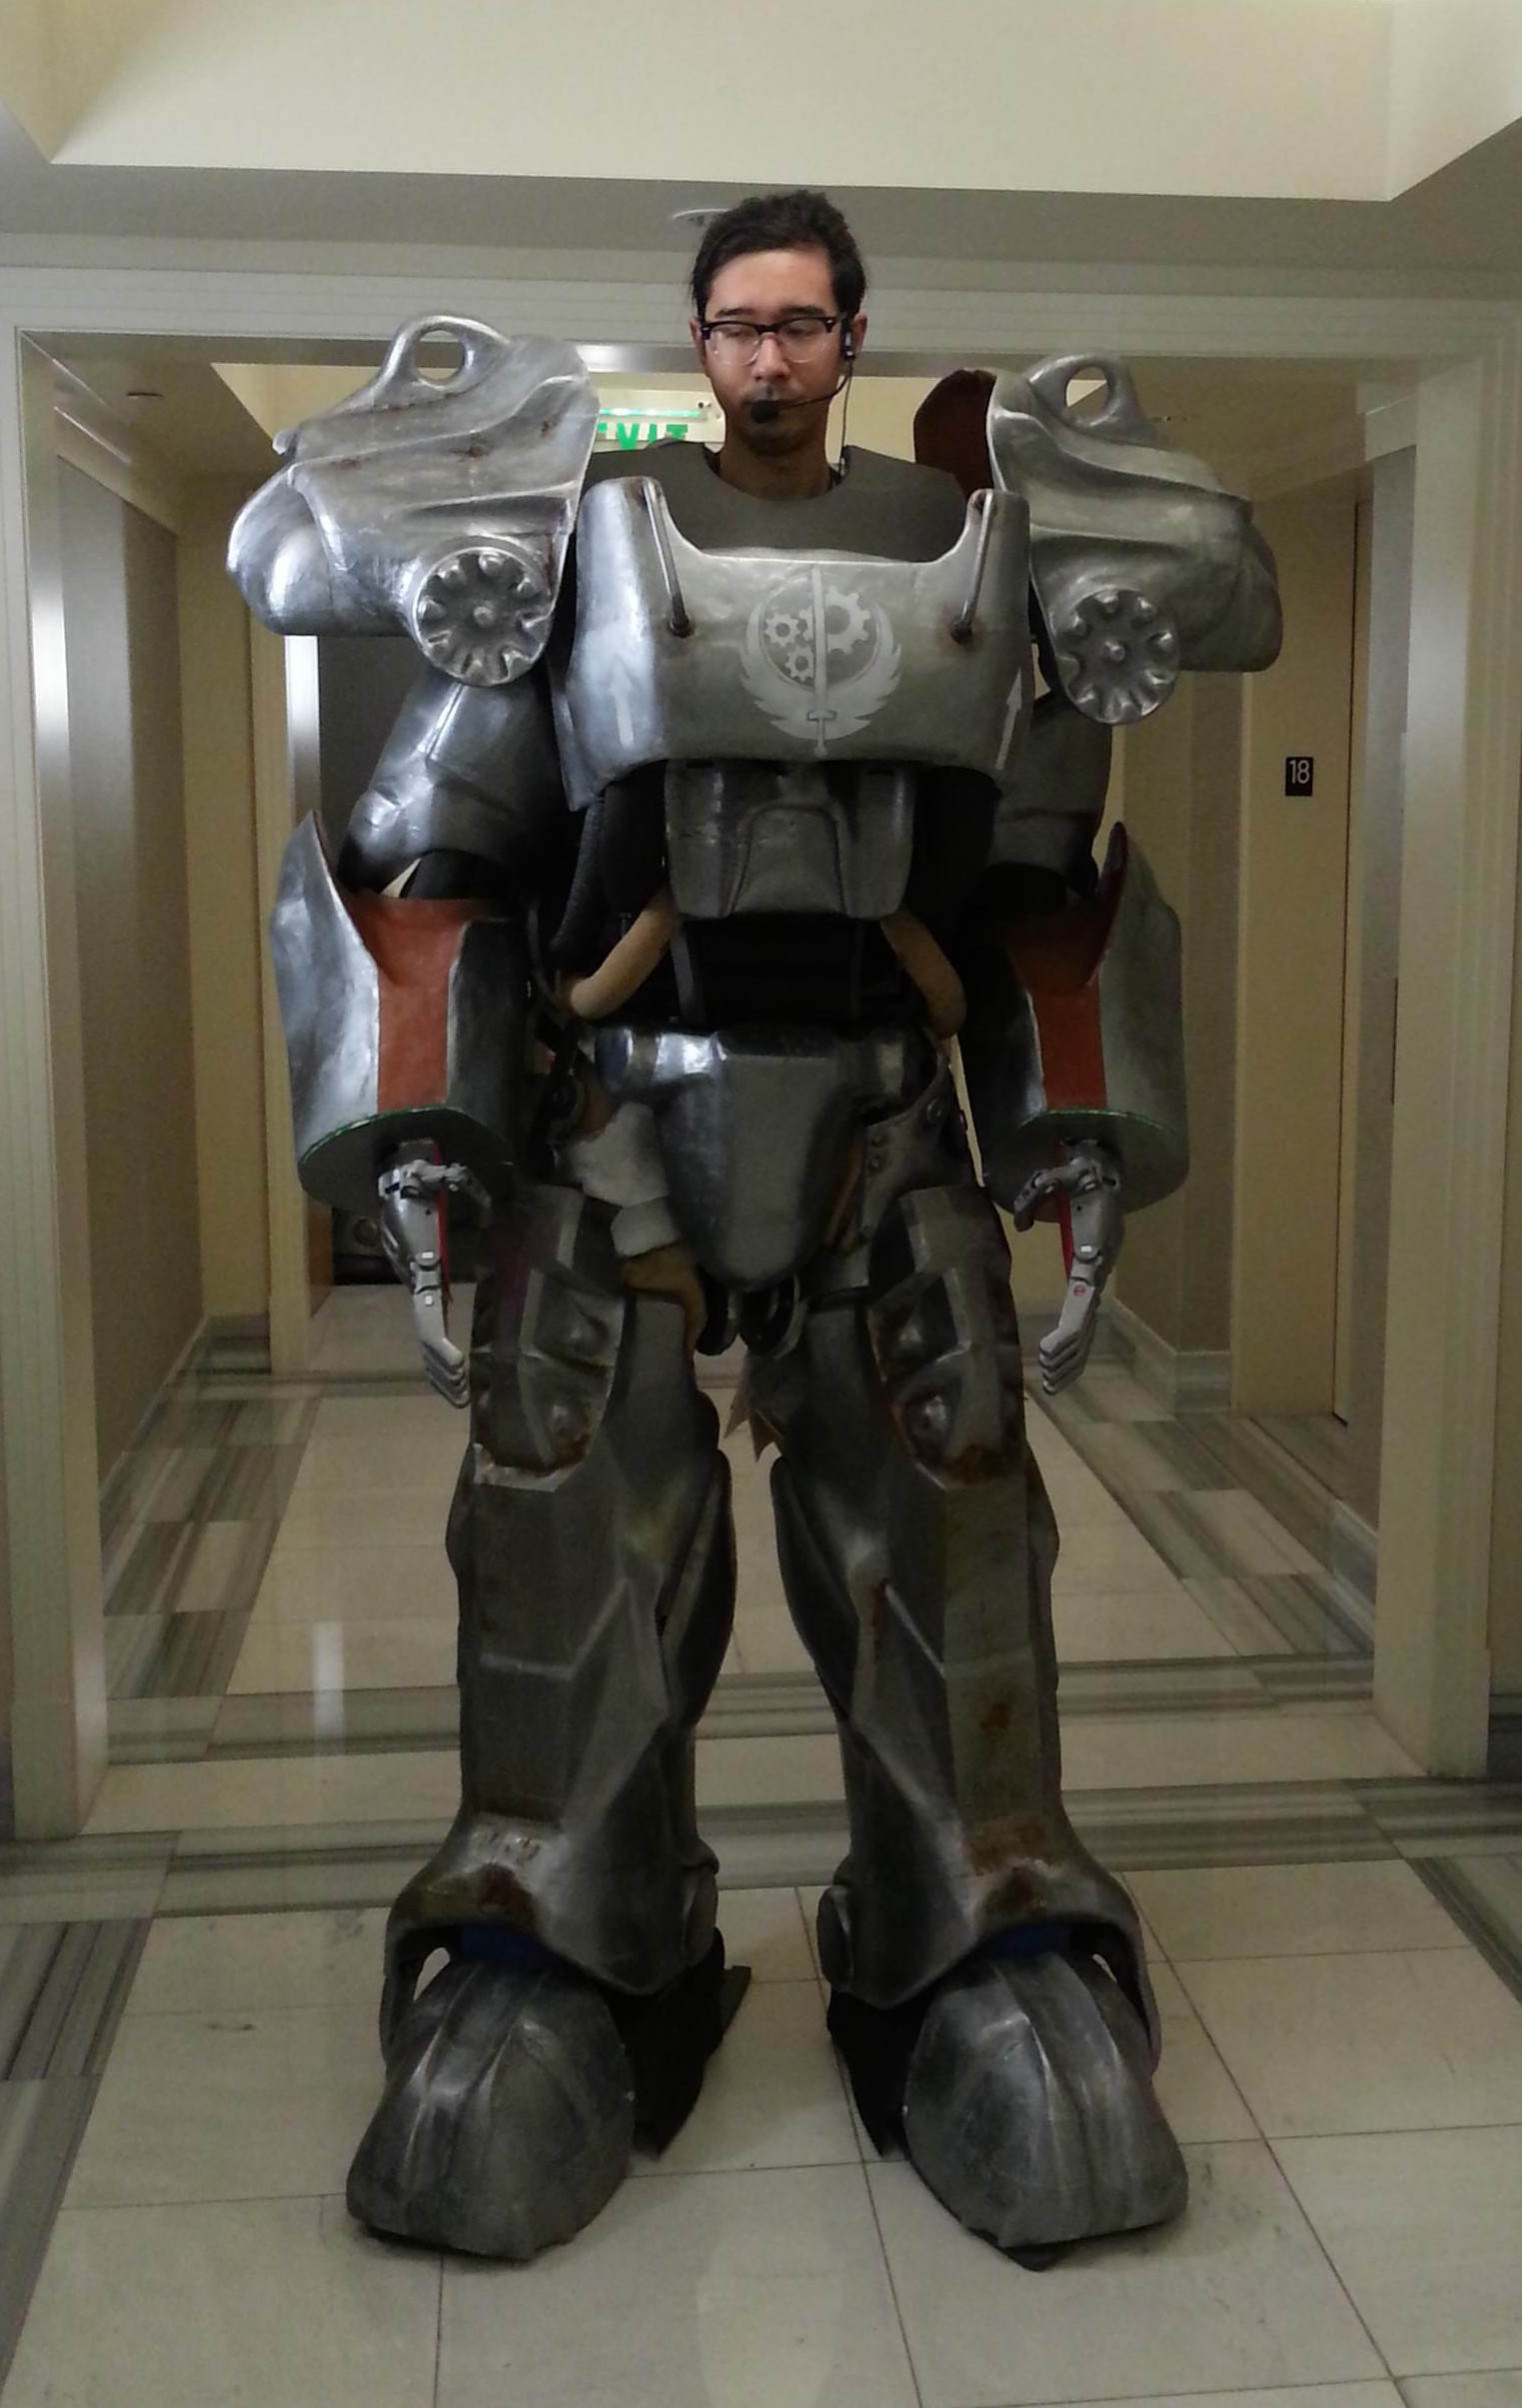 Monstrous Suit Of Power Armor 3D Printed Over 140 Days